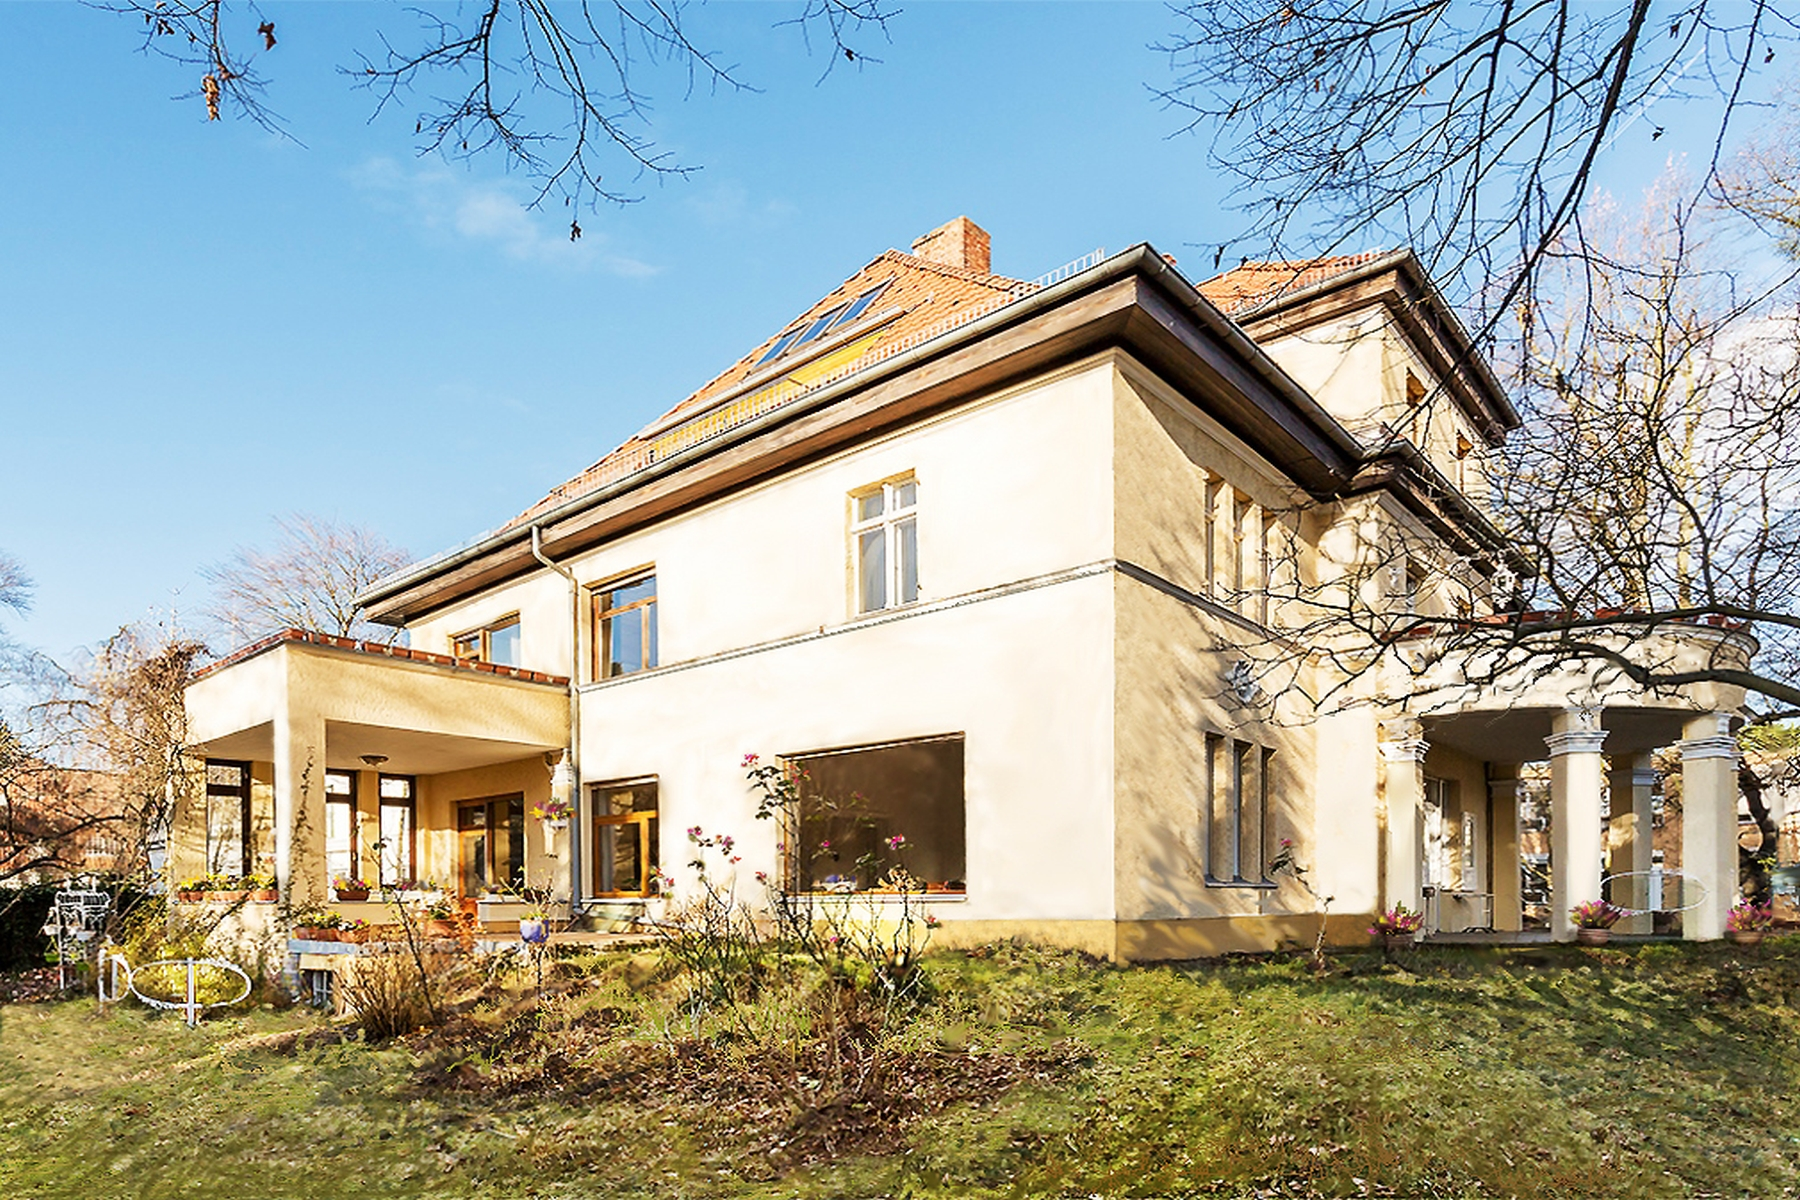 Single Family Home for Sale at Gorgeous country villa in the best location of Berlin! Berlin, Berlin, 14195 Germany